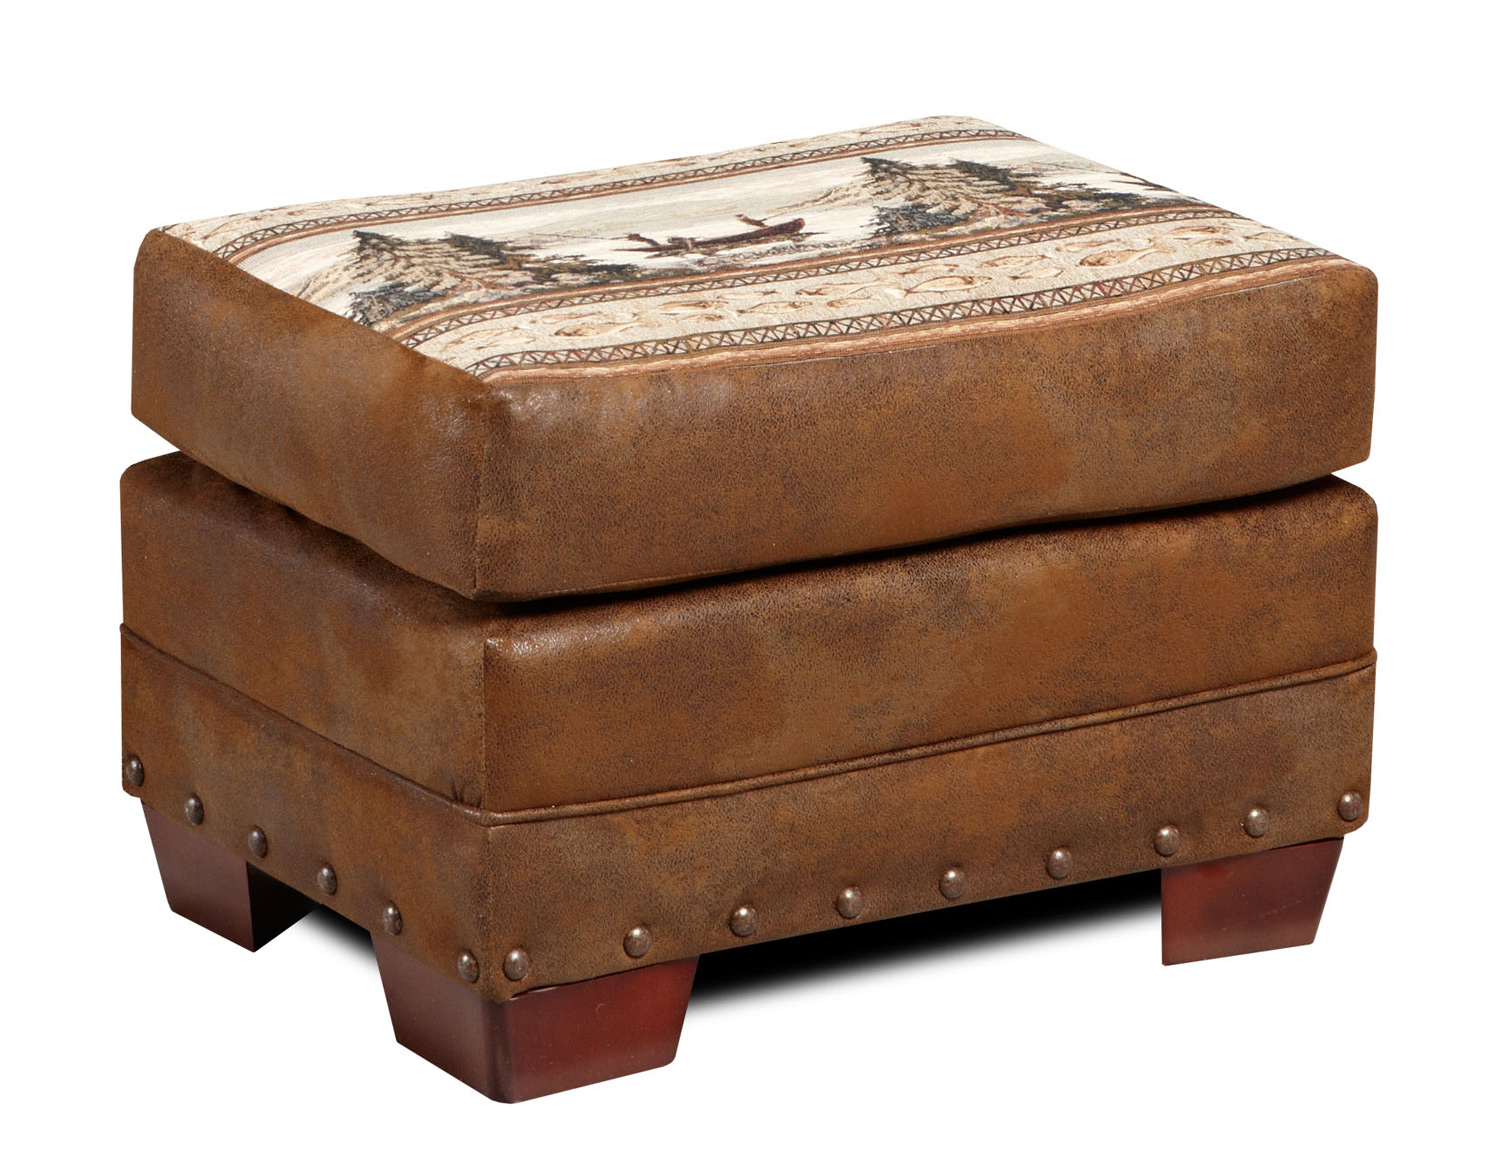 Black Forest Decor Mountain lake ottoman